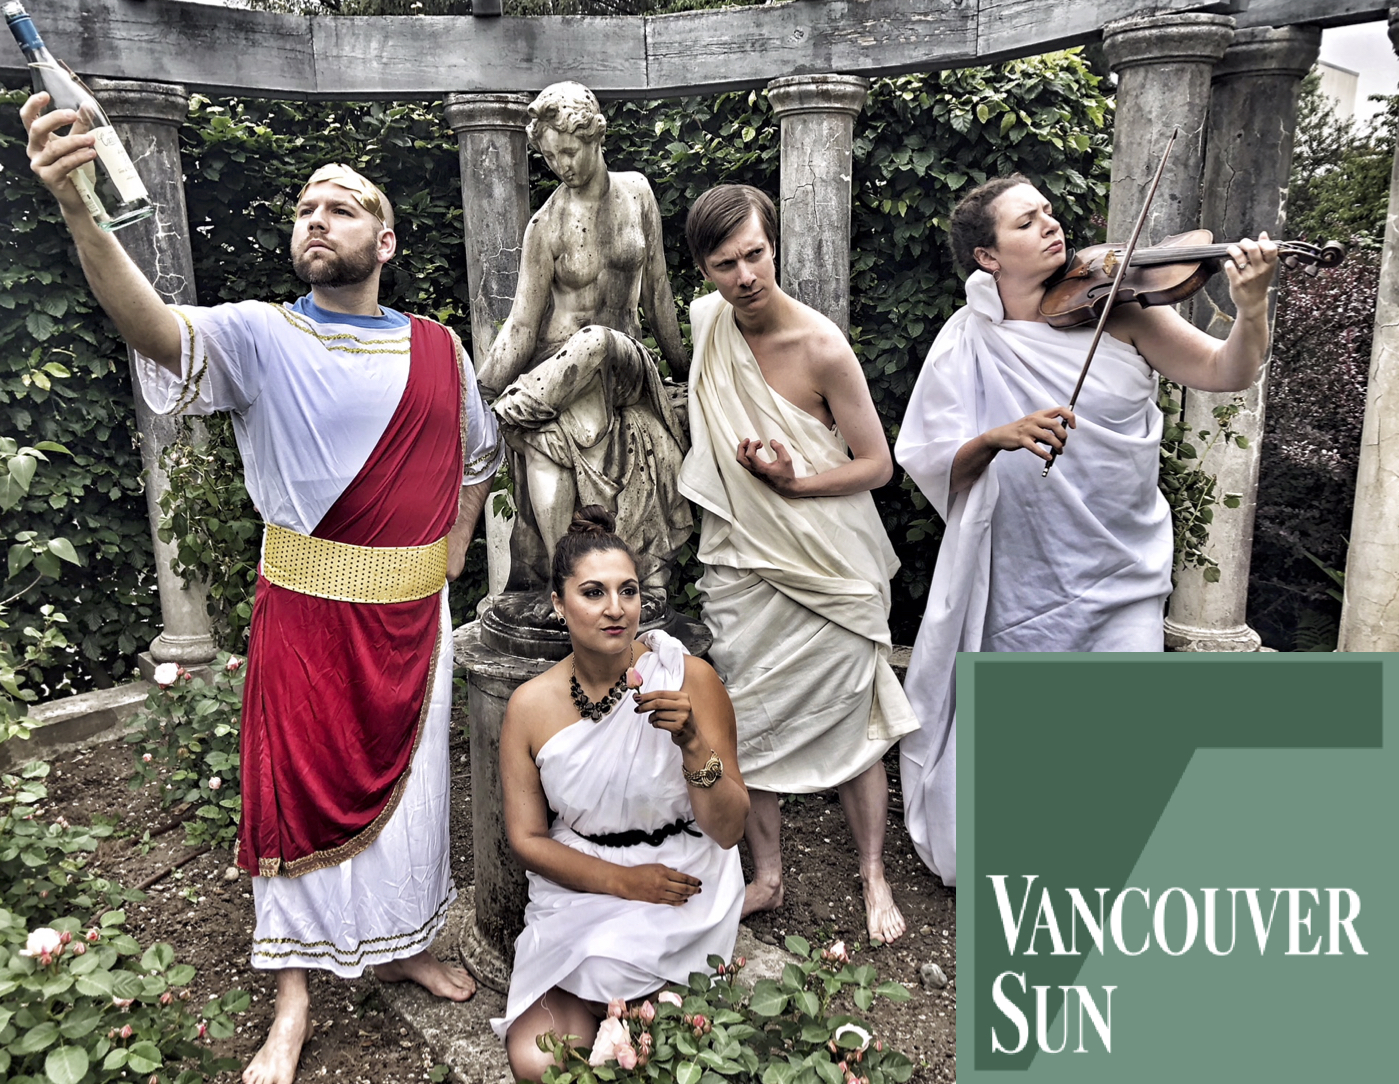 Check out this preview of our Bacchanalia performance in the Vancouver Sun.